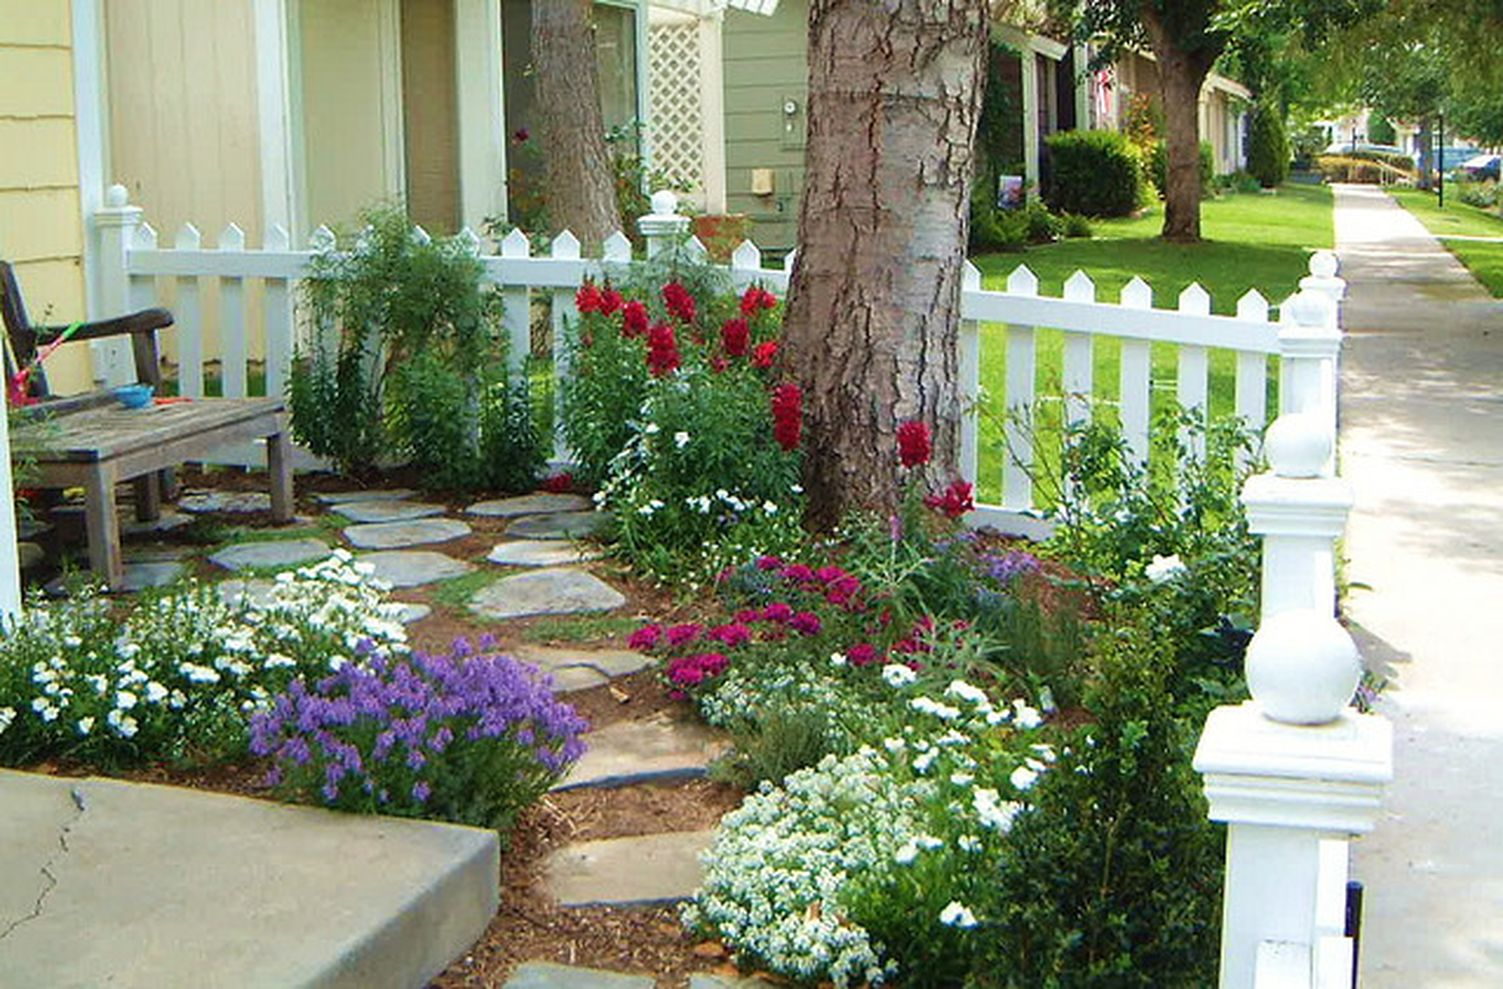 87 Cute and Simple Tiny Patio Garden Ideas - ROUNDECOR on Basic Patio Ideas id=79417